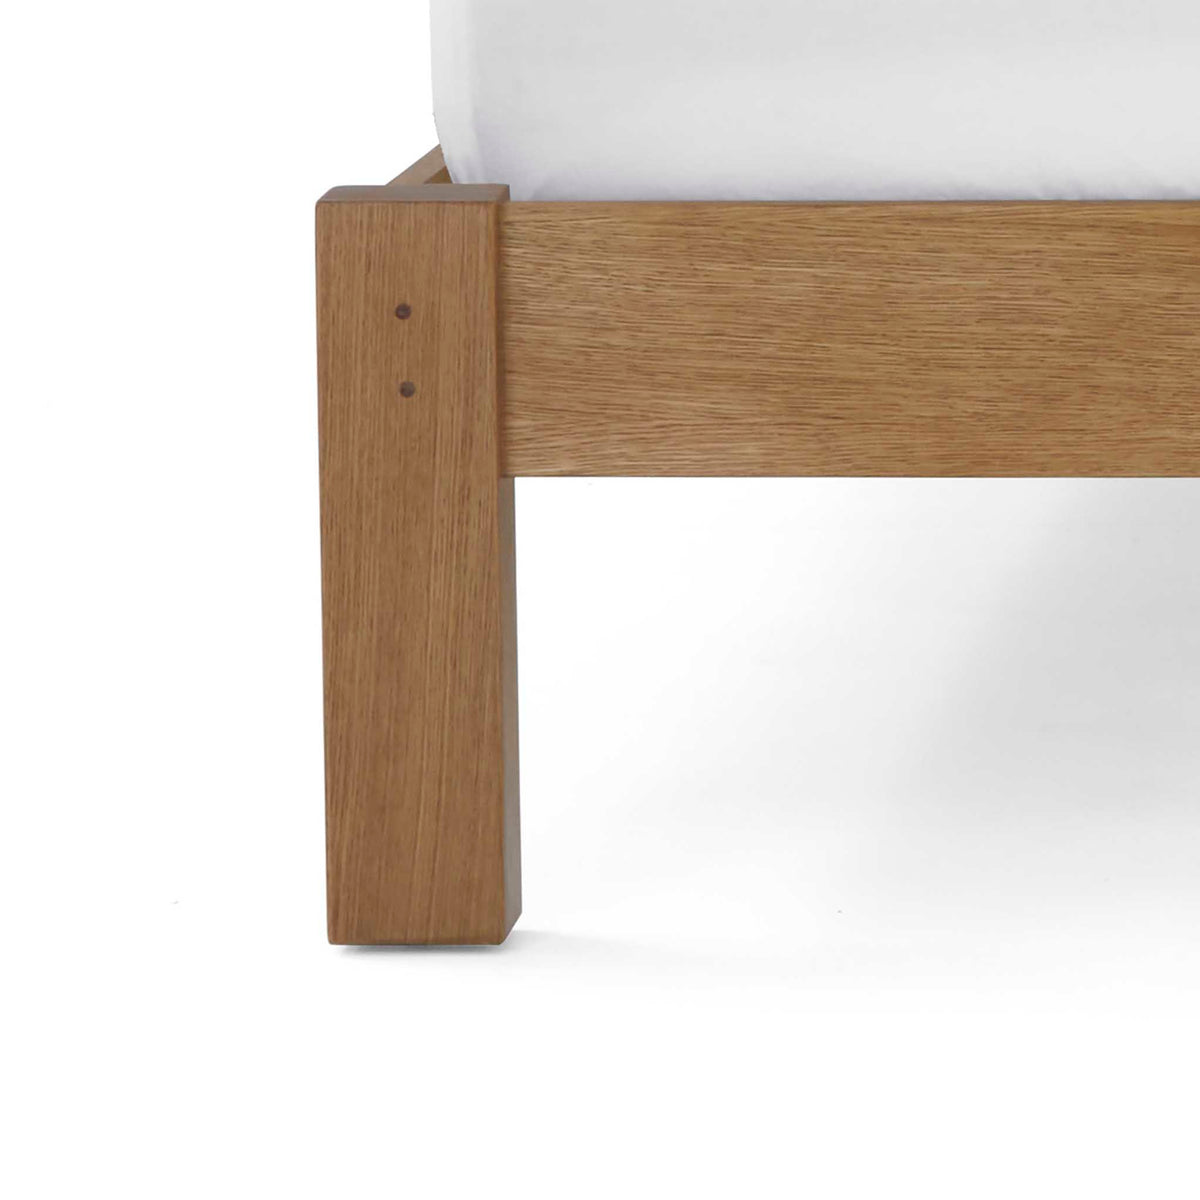 close up of solid wood frame leg on the Broadway Upholstered Bed Frame